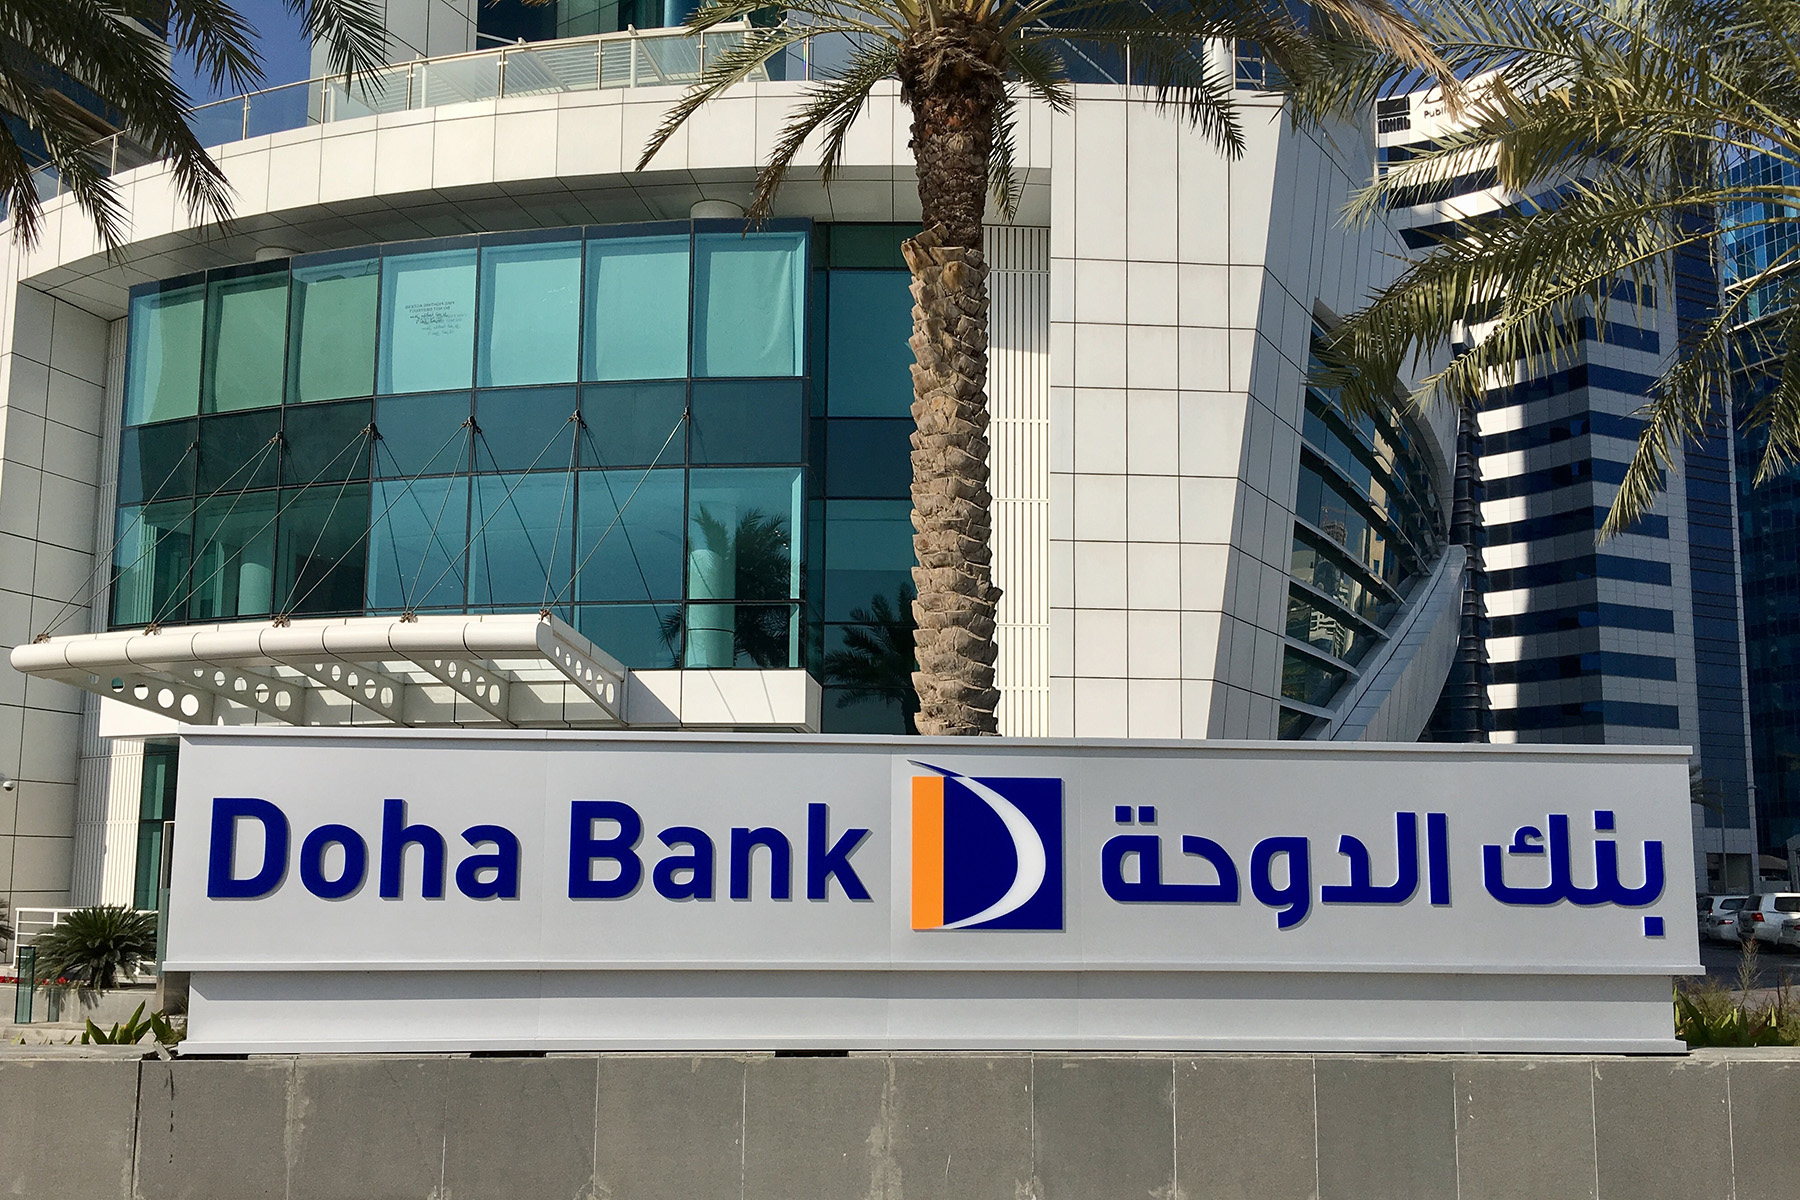 The offices of Doha Bank